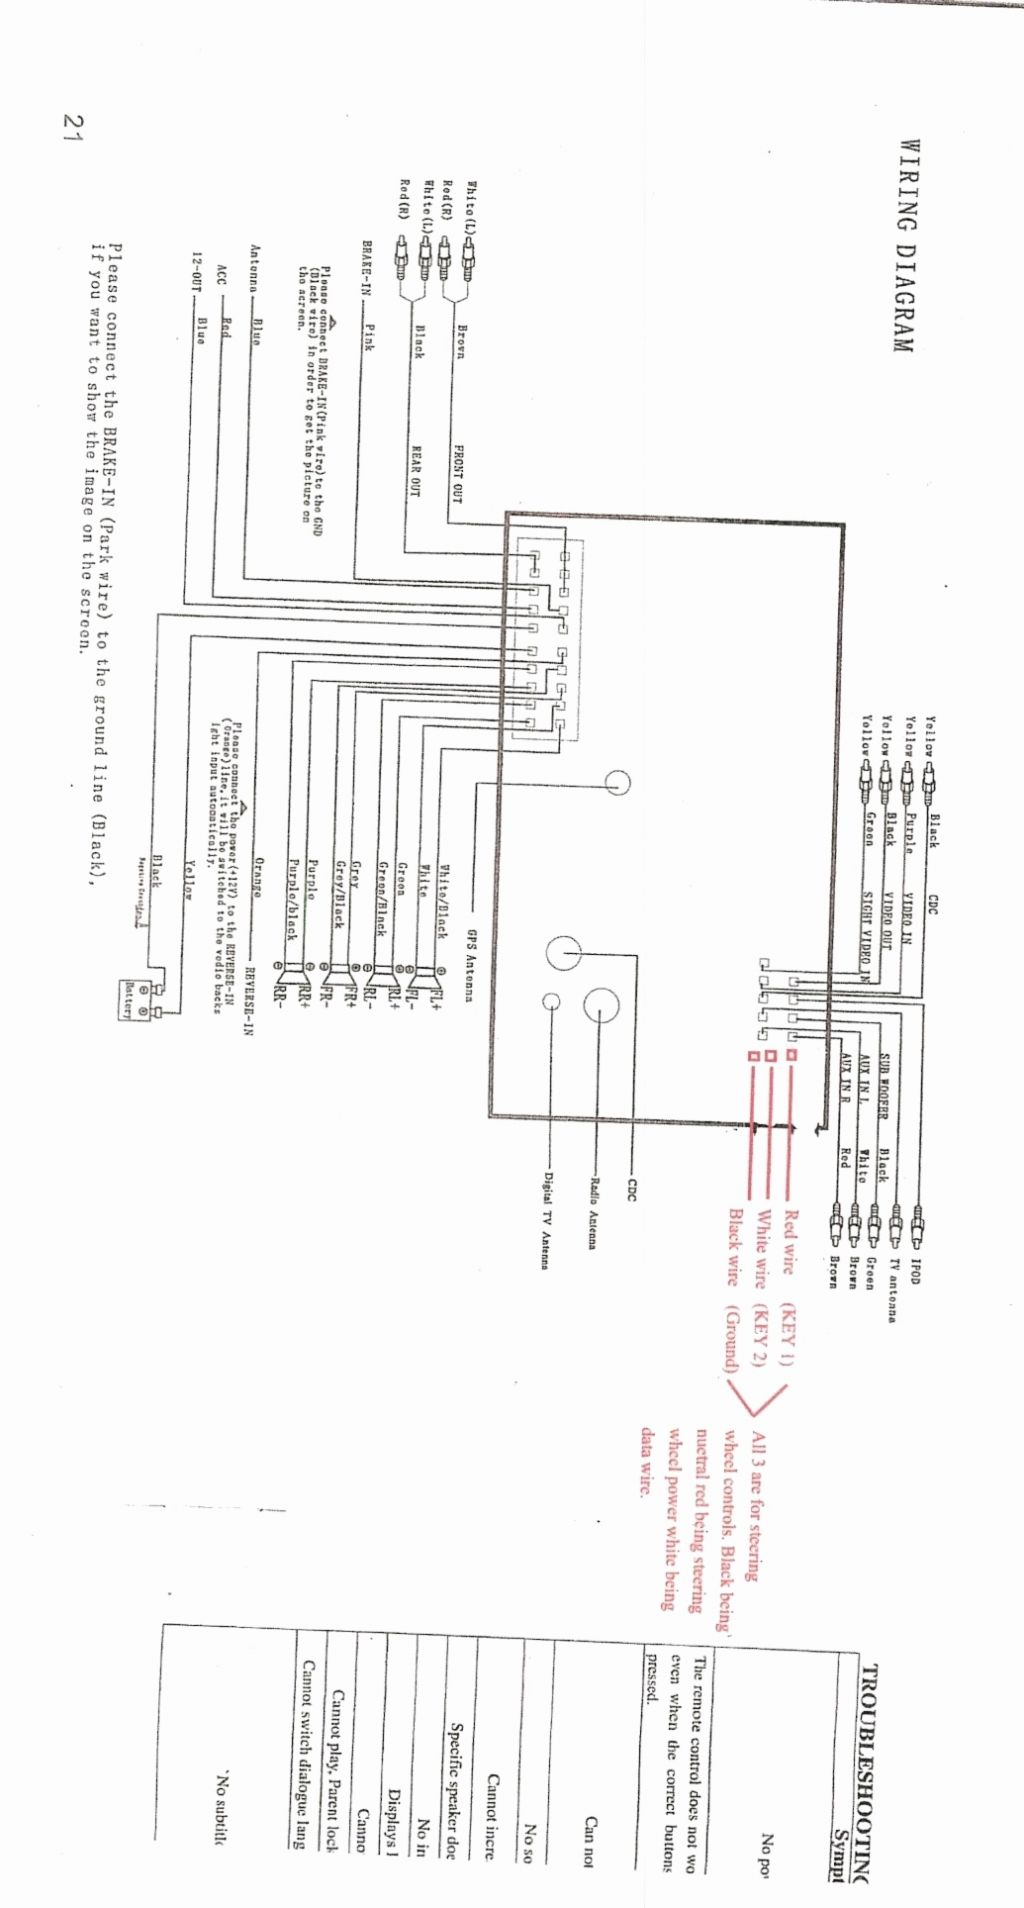 Axxess Gmos Lan 02 Wiring Diagram Download Wiring